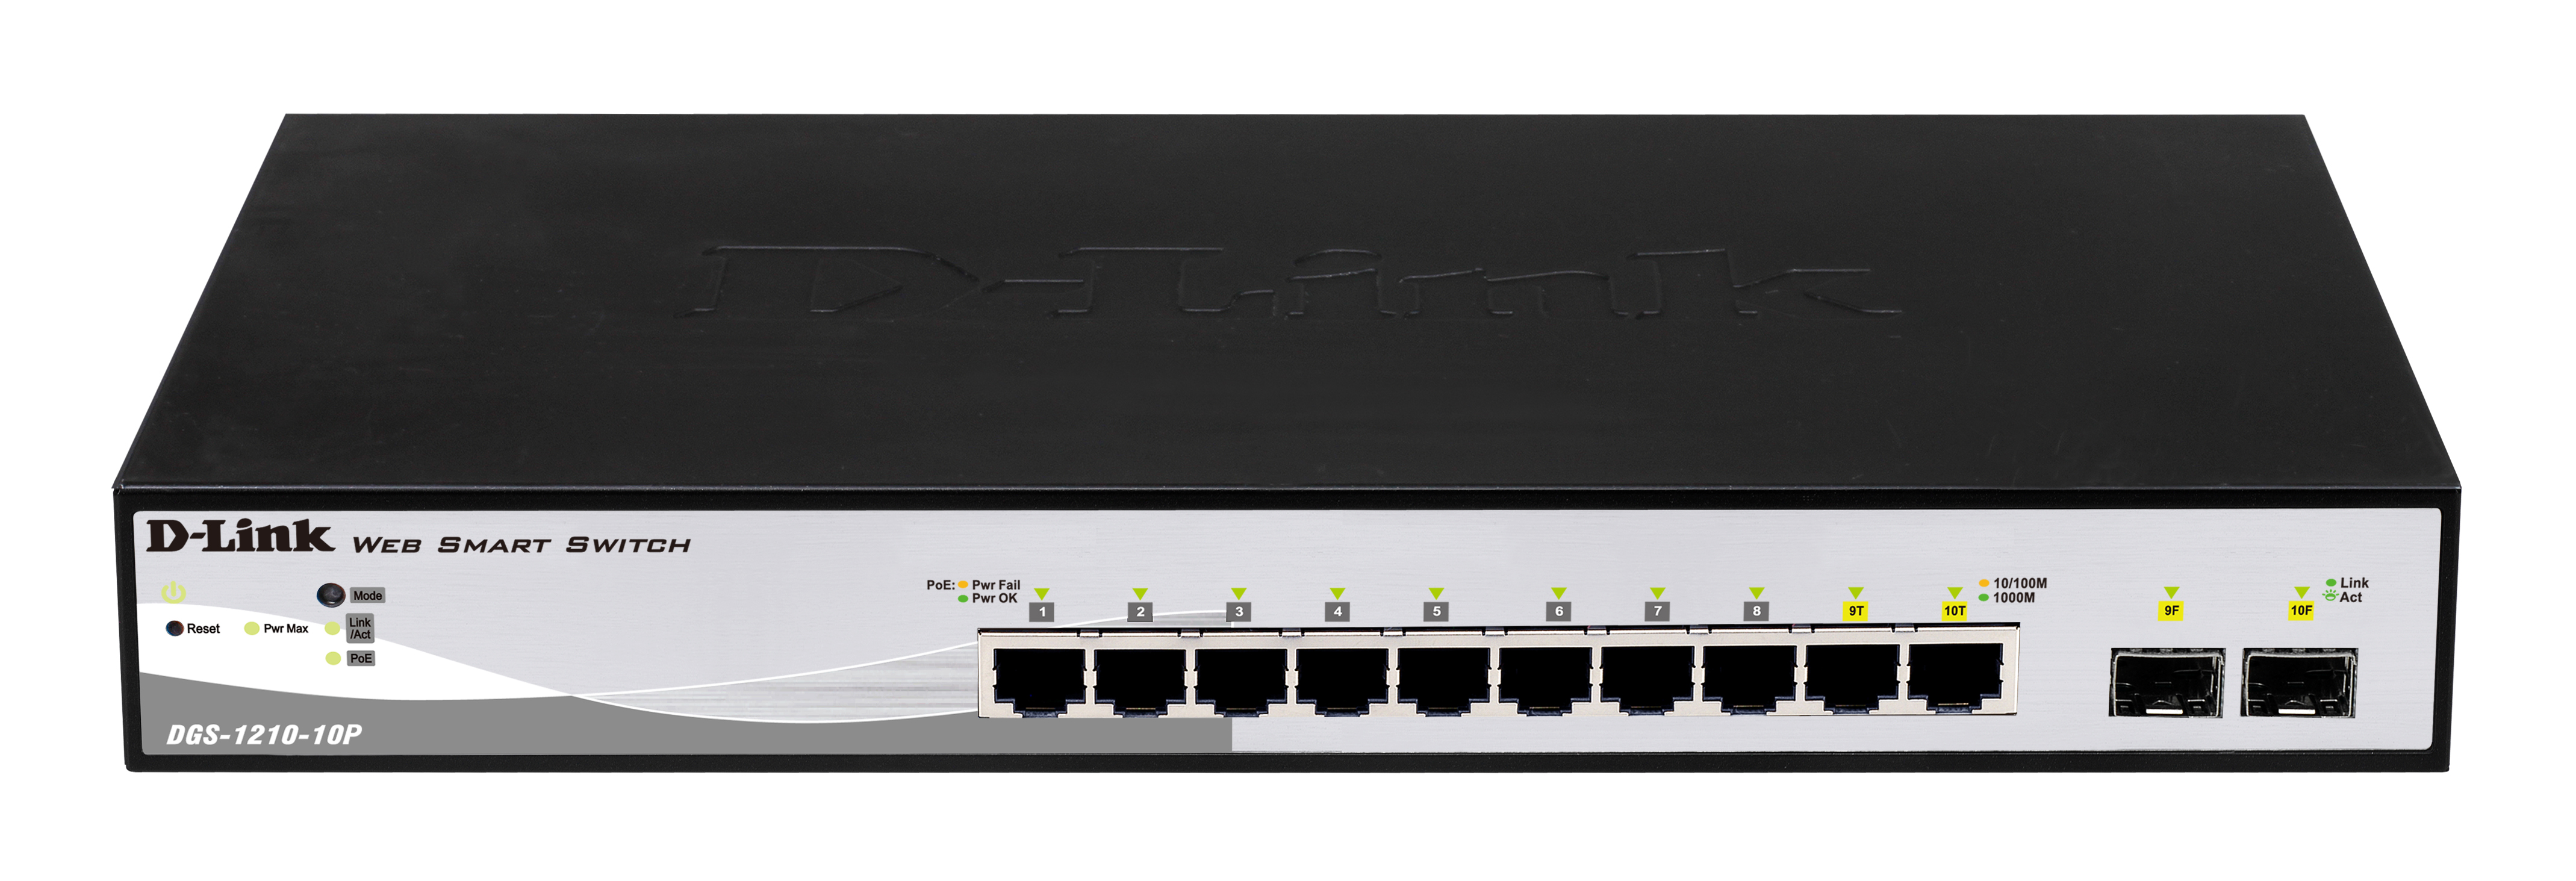 10-port GB PoE Smart Switch including 2 X SFP with 78W power budget